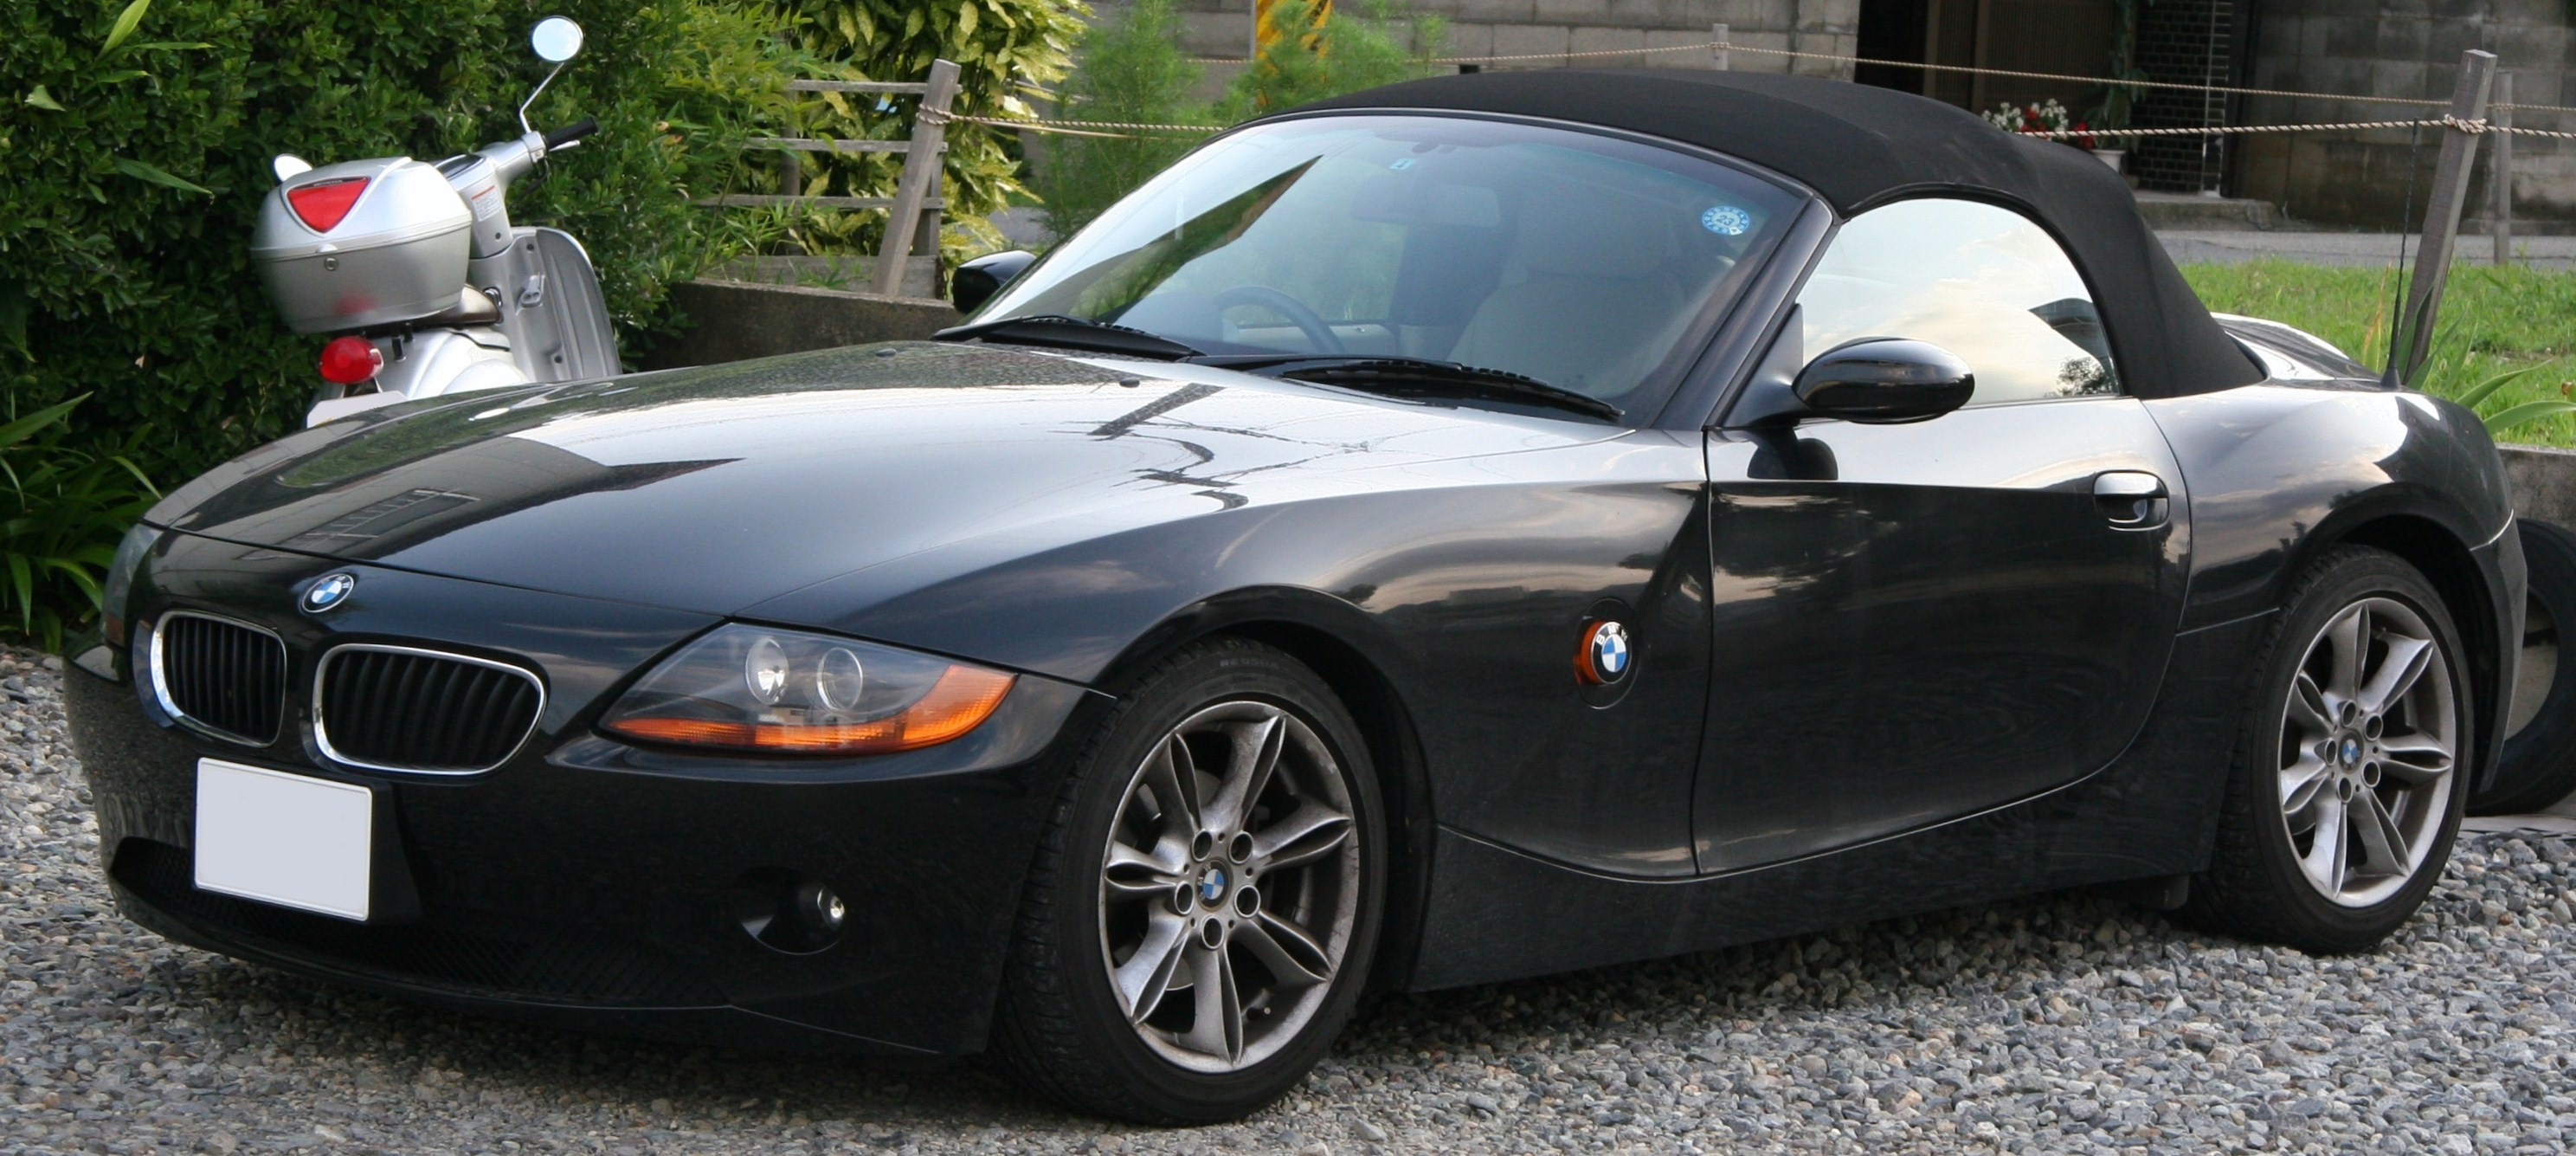 Bmw Z4 Wikipedia Autos Post